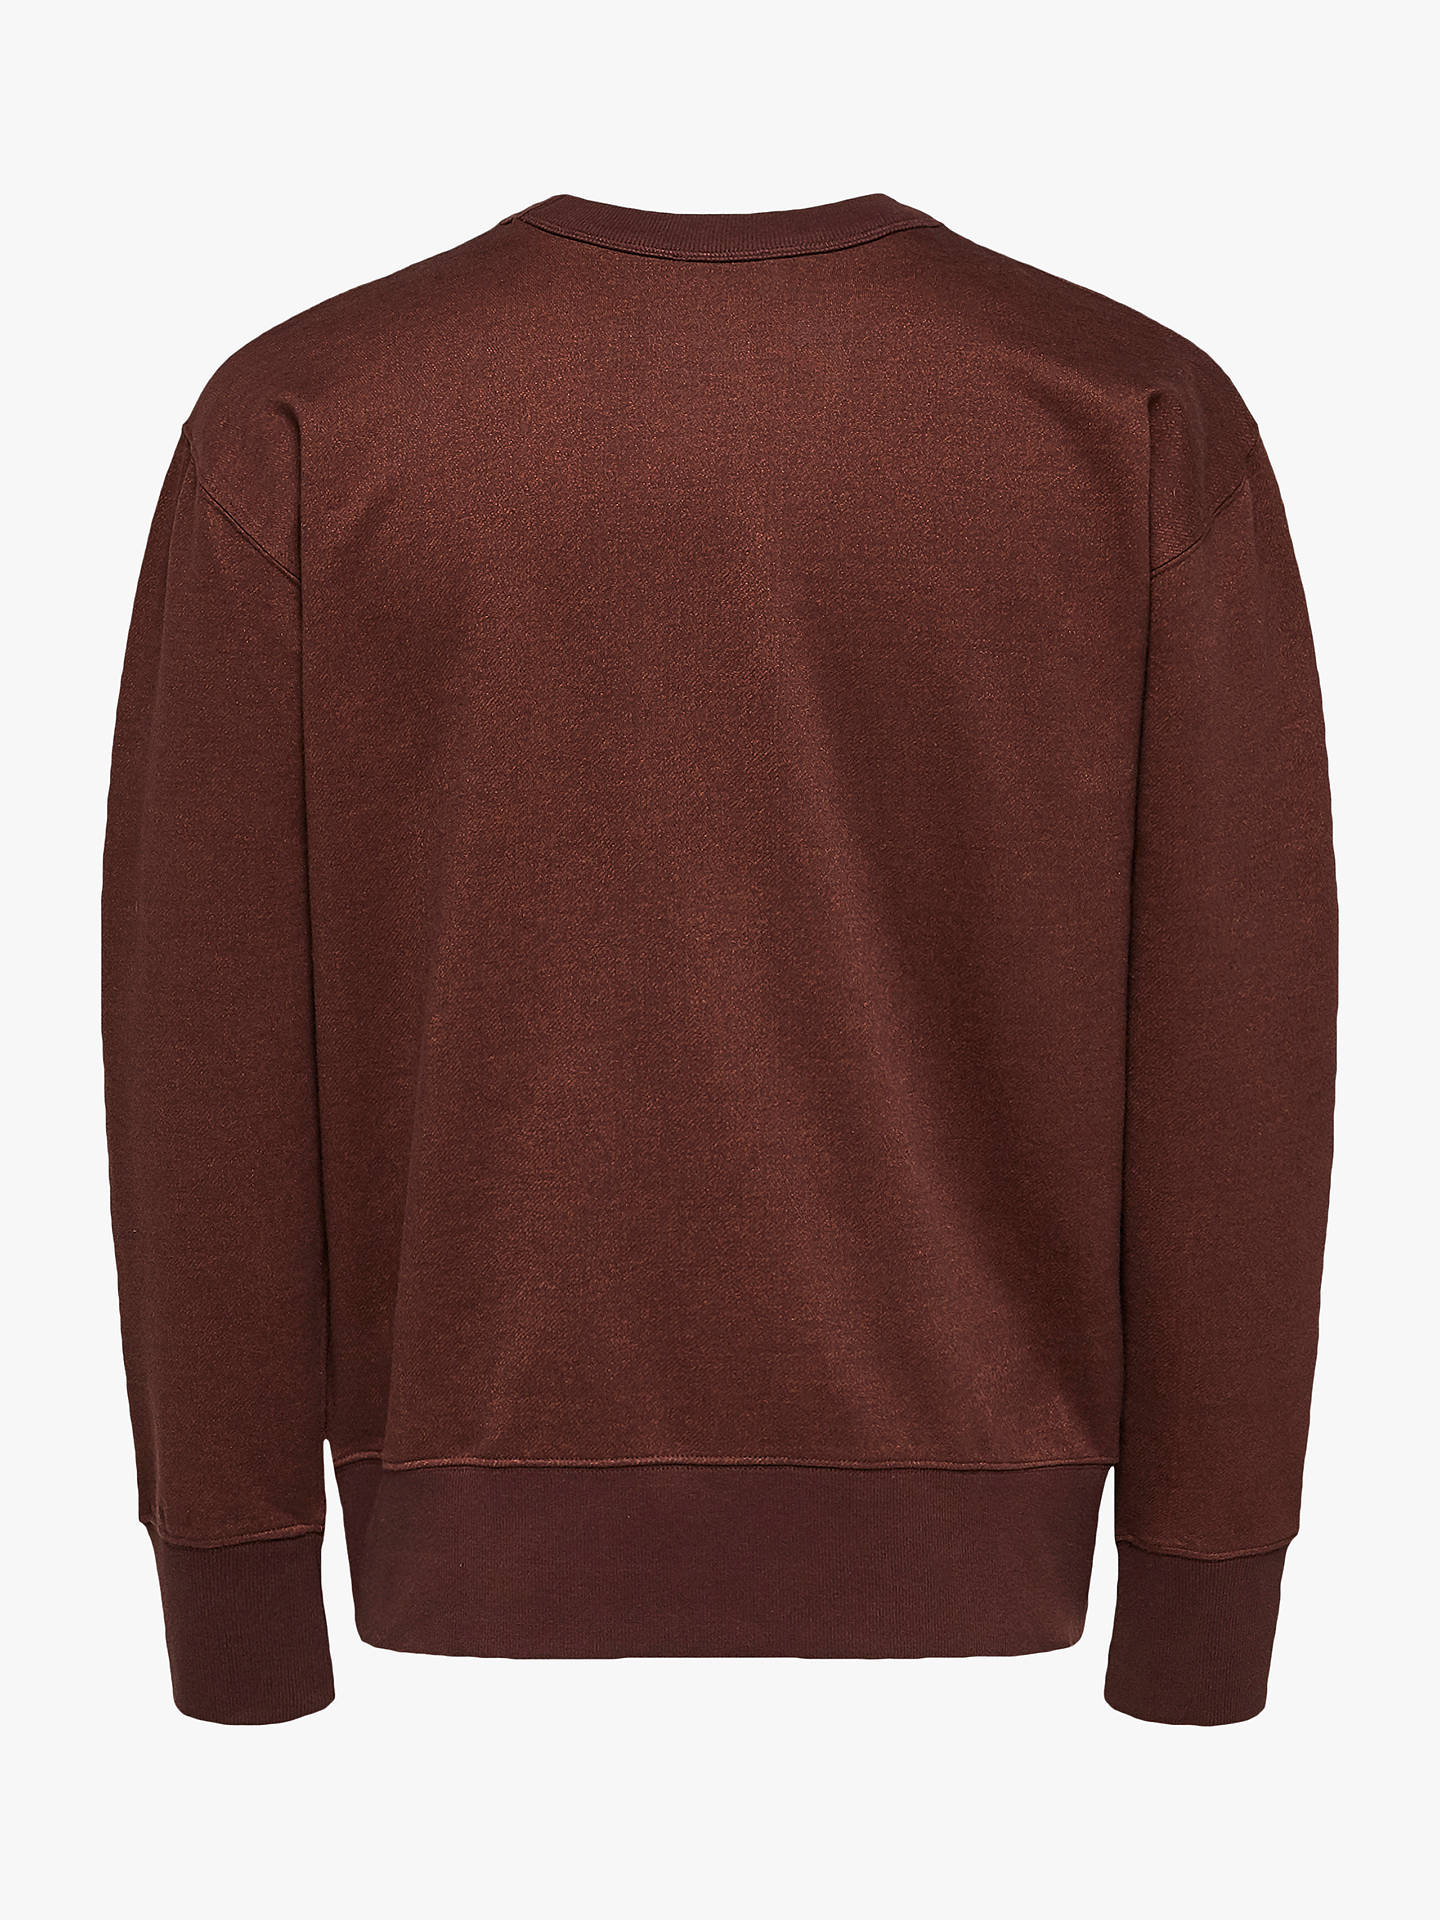 Buy Selected Homme Max Crew Neck Sweater, Bitter Chocolate, L Online at johnlewis.com